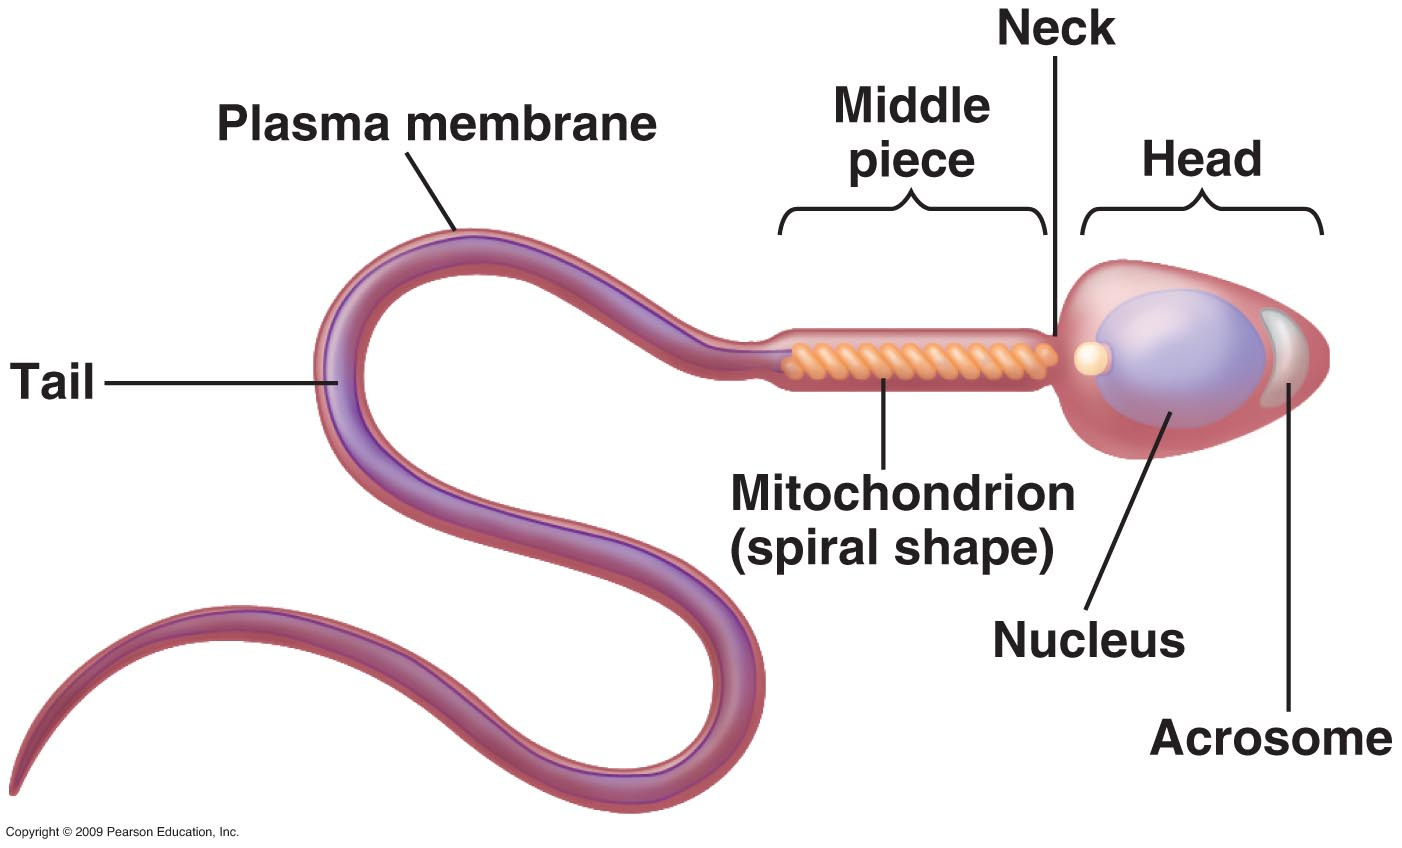 What is the structure of a mature human sperm cell? - Lifeeasy ...